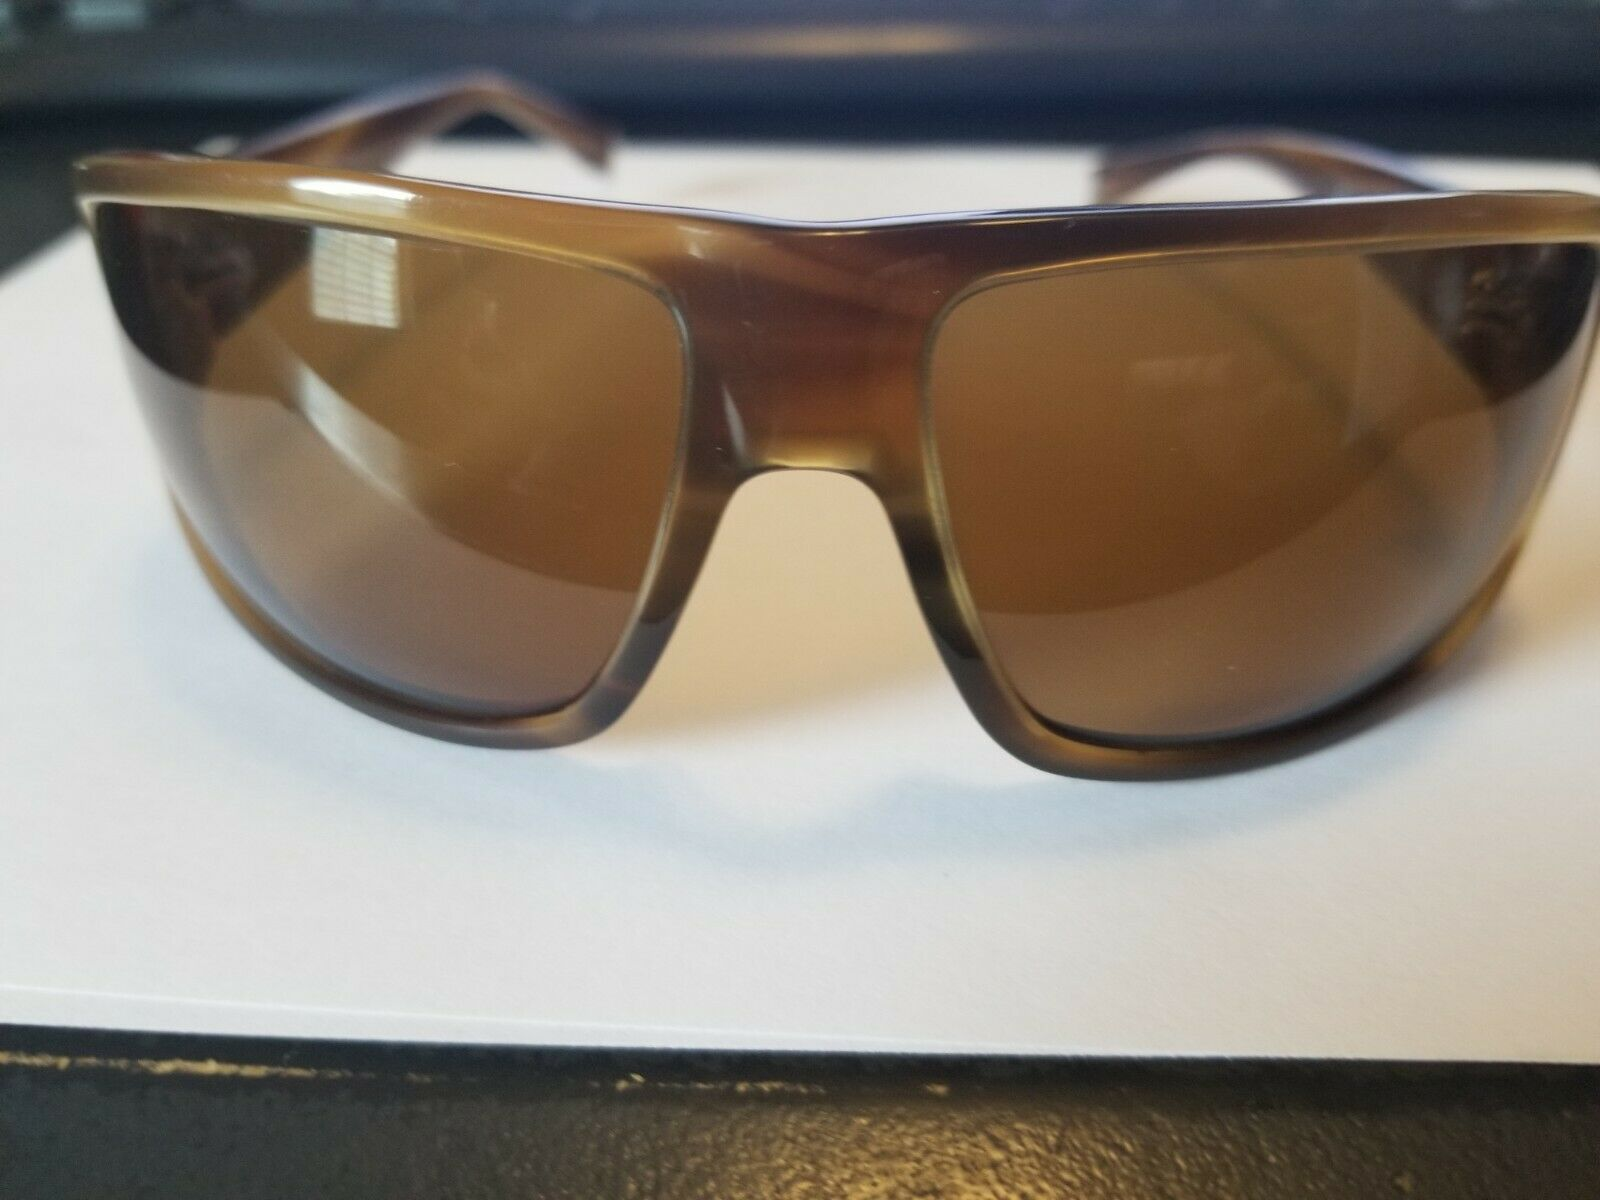 Oliver Peoples NEW Montana Women's Sunglasses COLOR SYC 69 15-120 Made in Japan